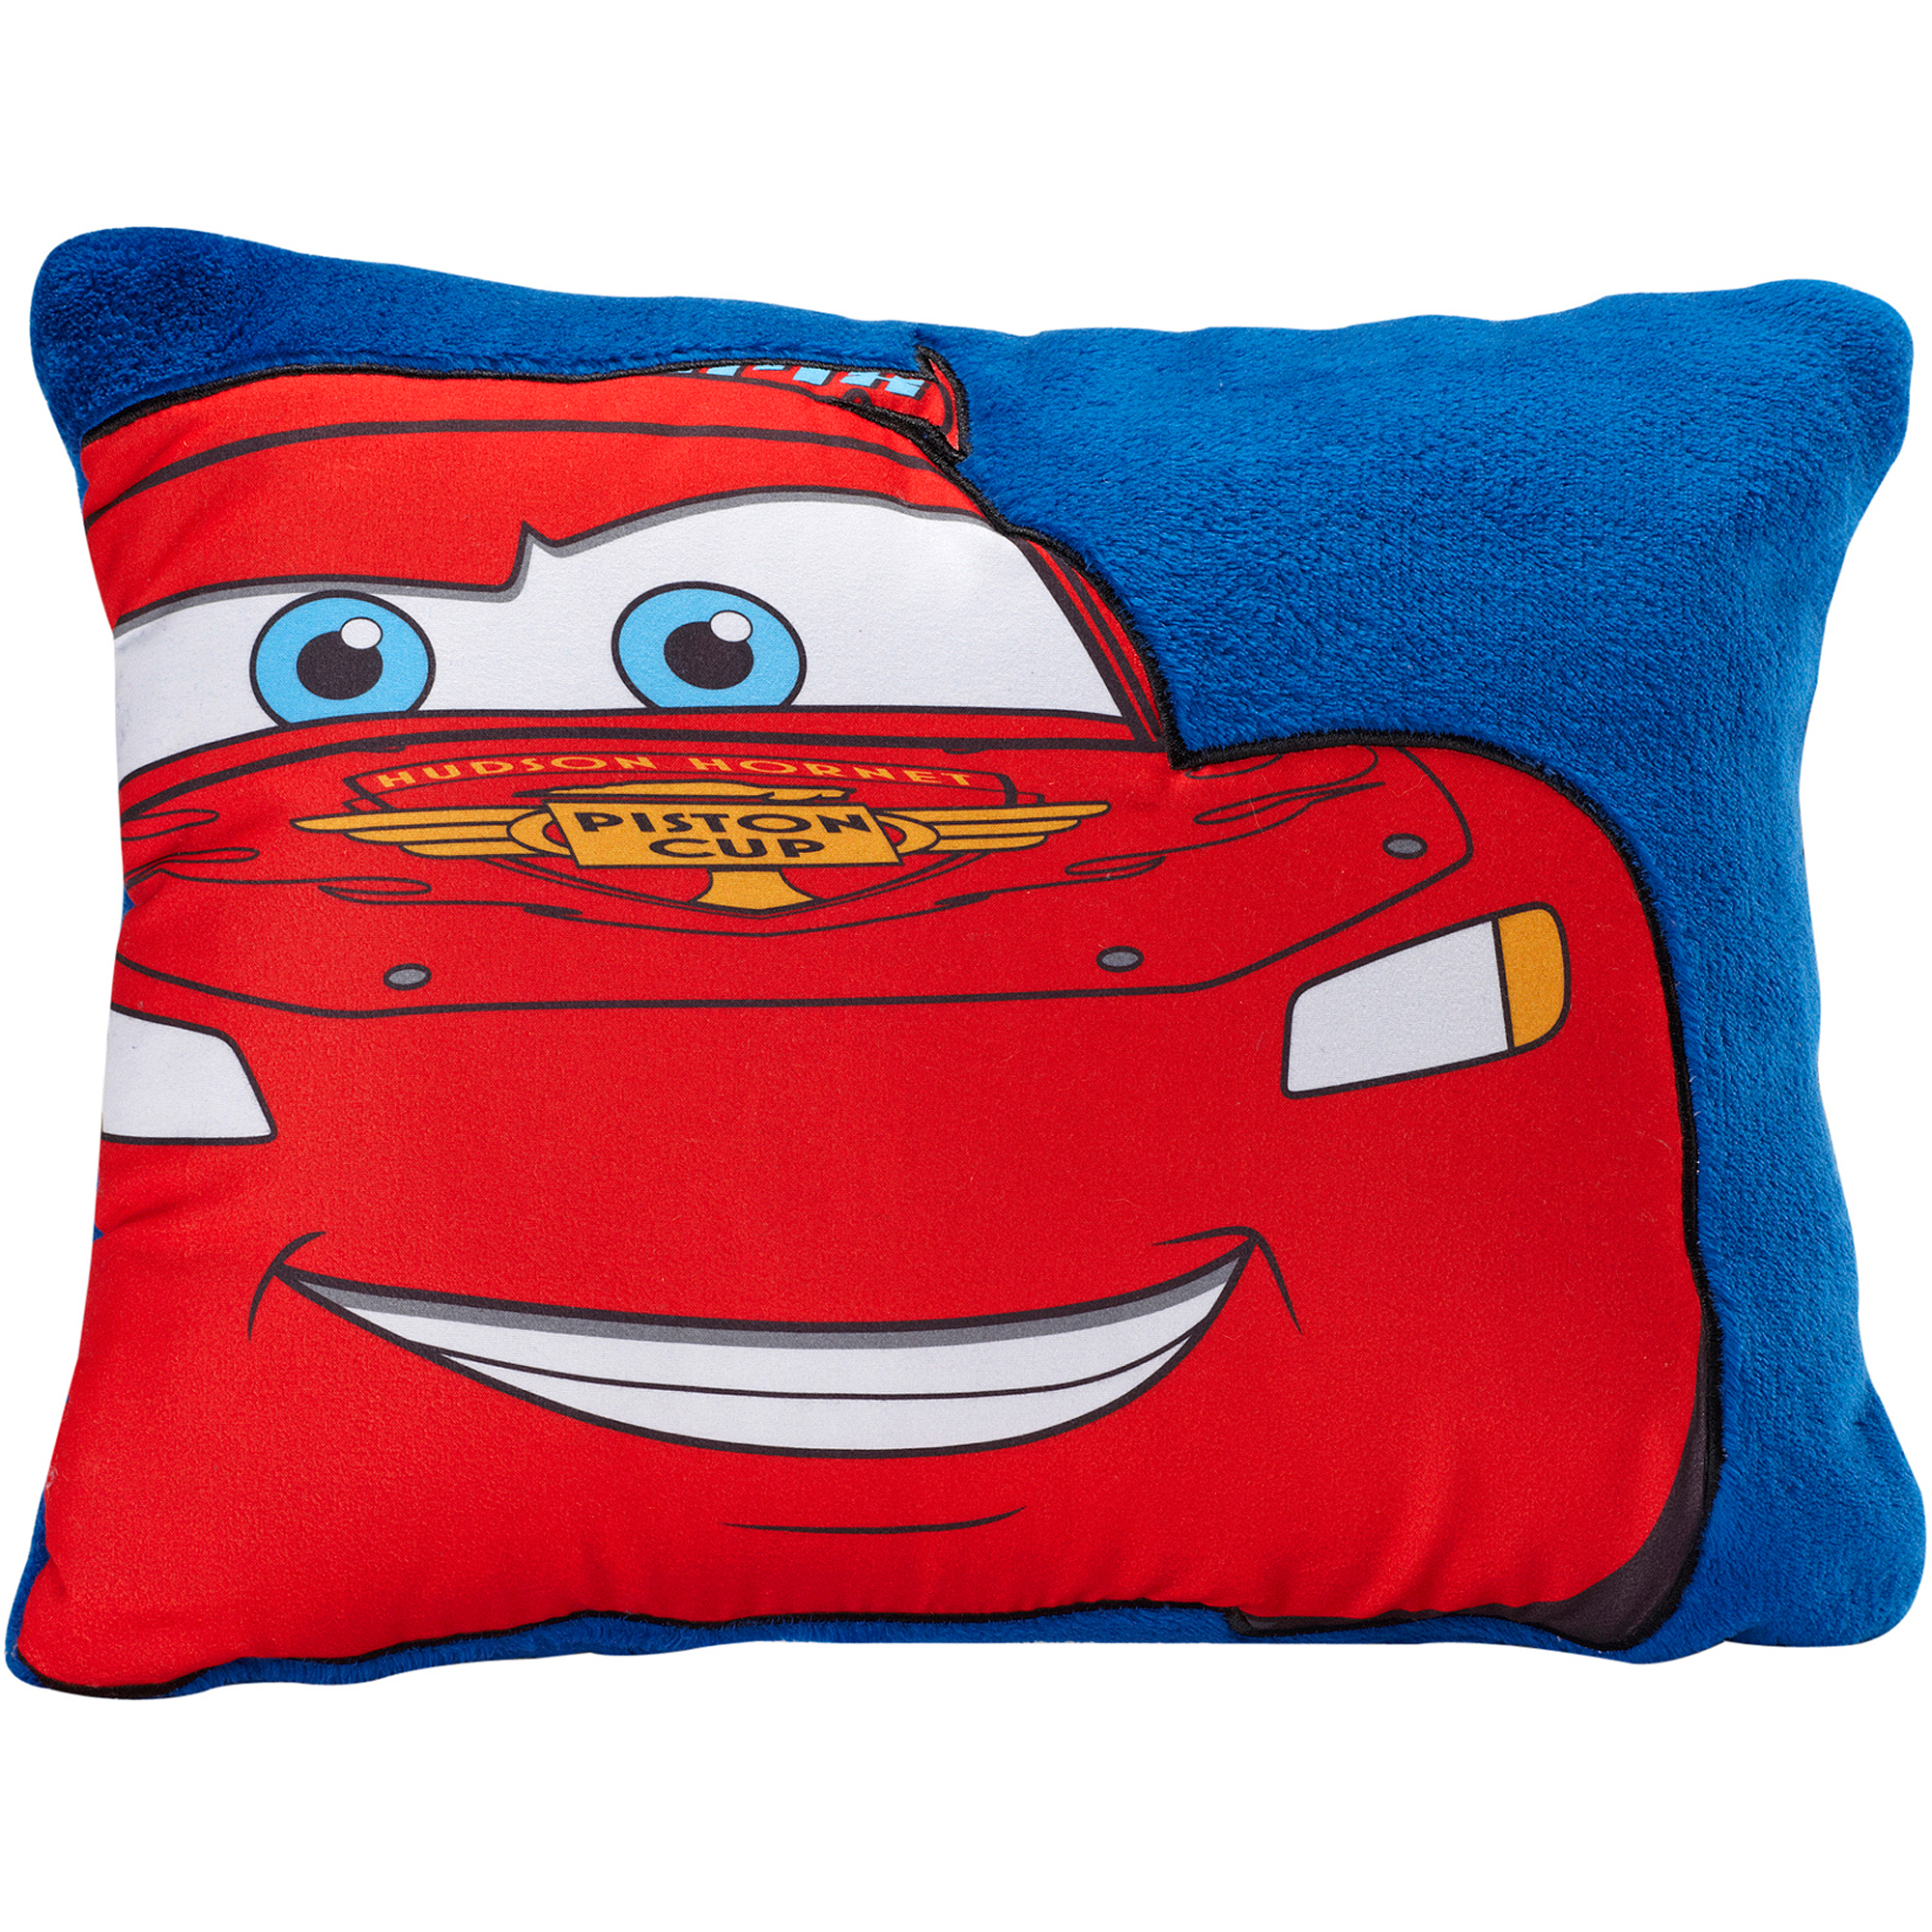 Disney Cars Toddler Pillow